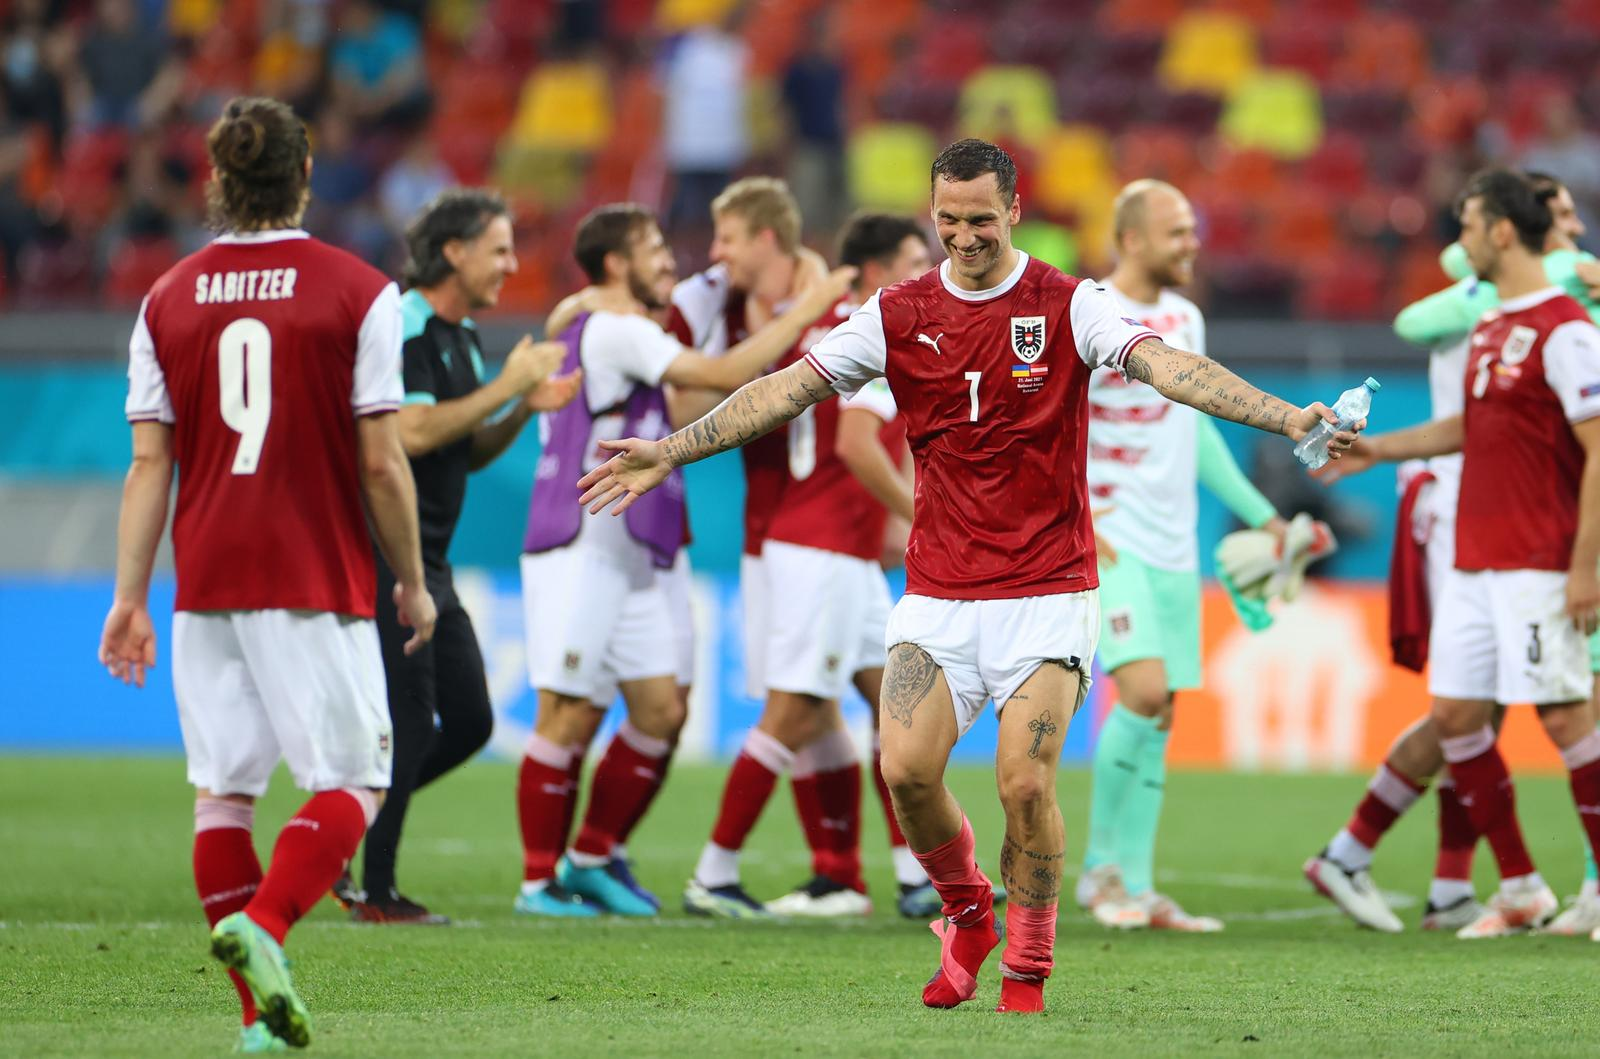 Austria advance to last 16 with win over Ukraine in final group game